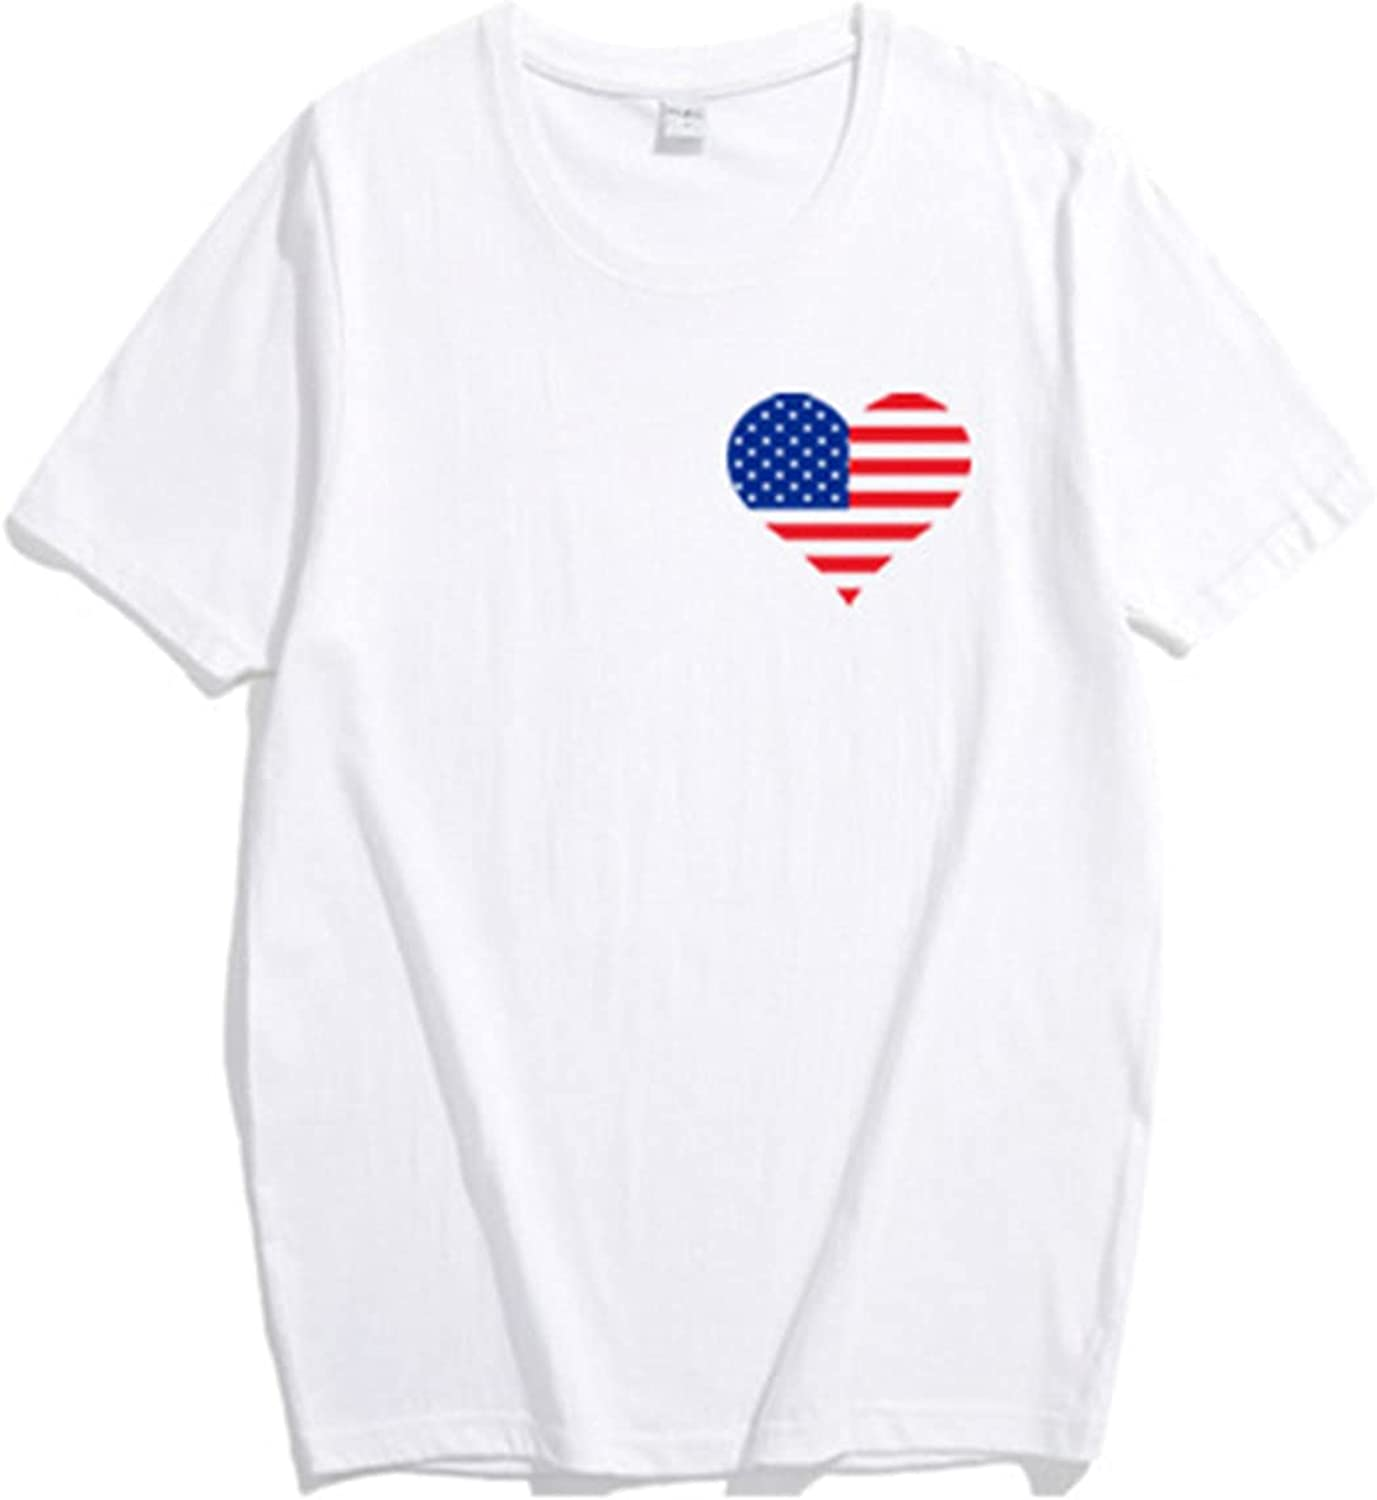 Family Matching Outfits,American Flag Peach Heart Print Parent Child Top Family Short Sleeve T-Shirt White Family Outfits,